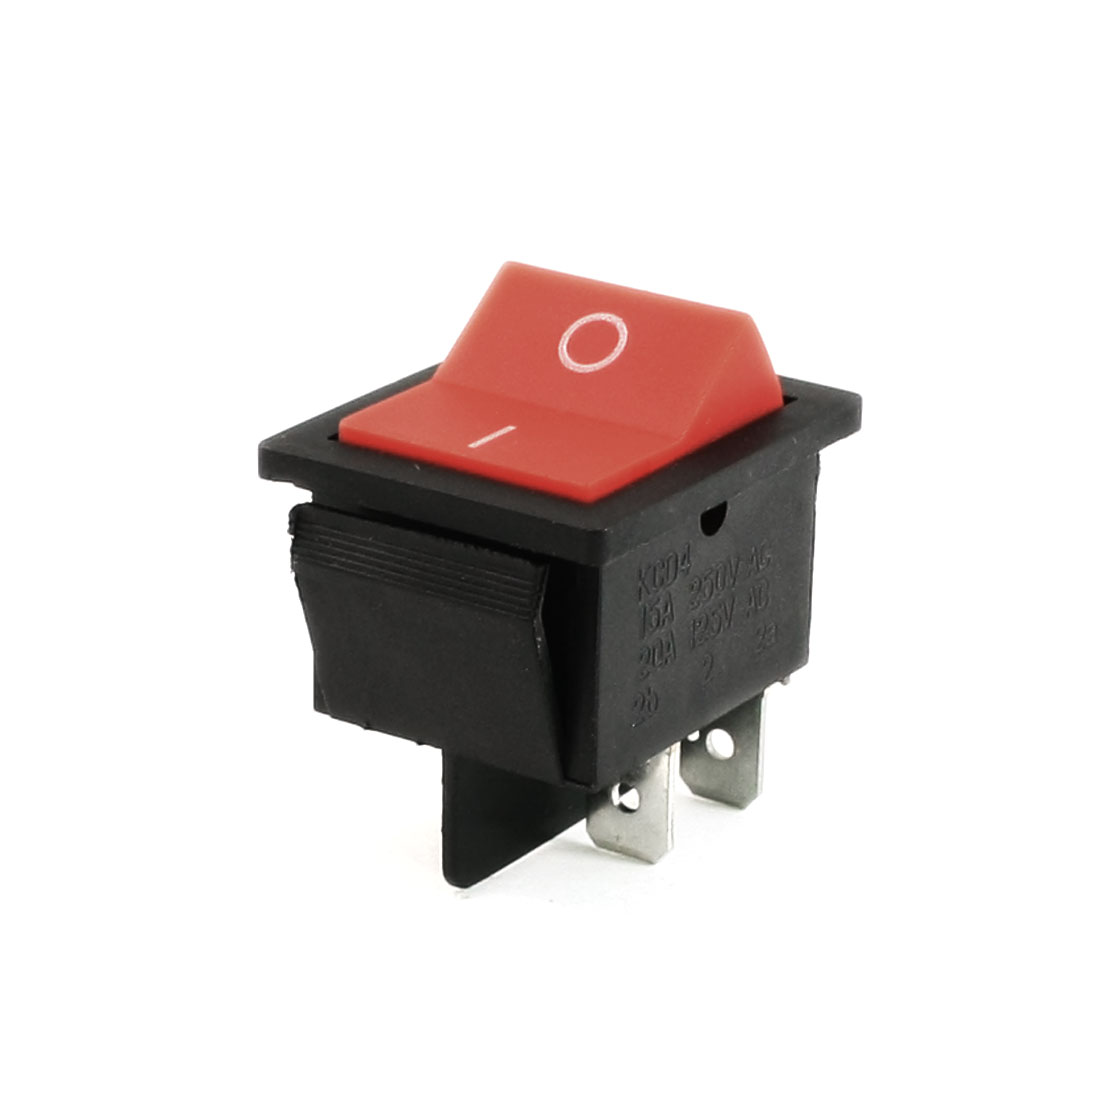 AC 250V/15A 125V/20A 4 Terminals DPDT ON/OFF Reset Rocker Switch